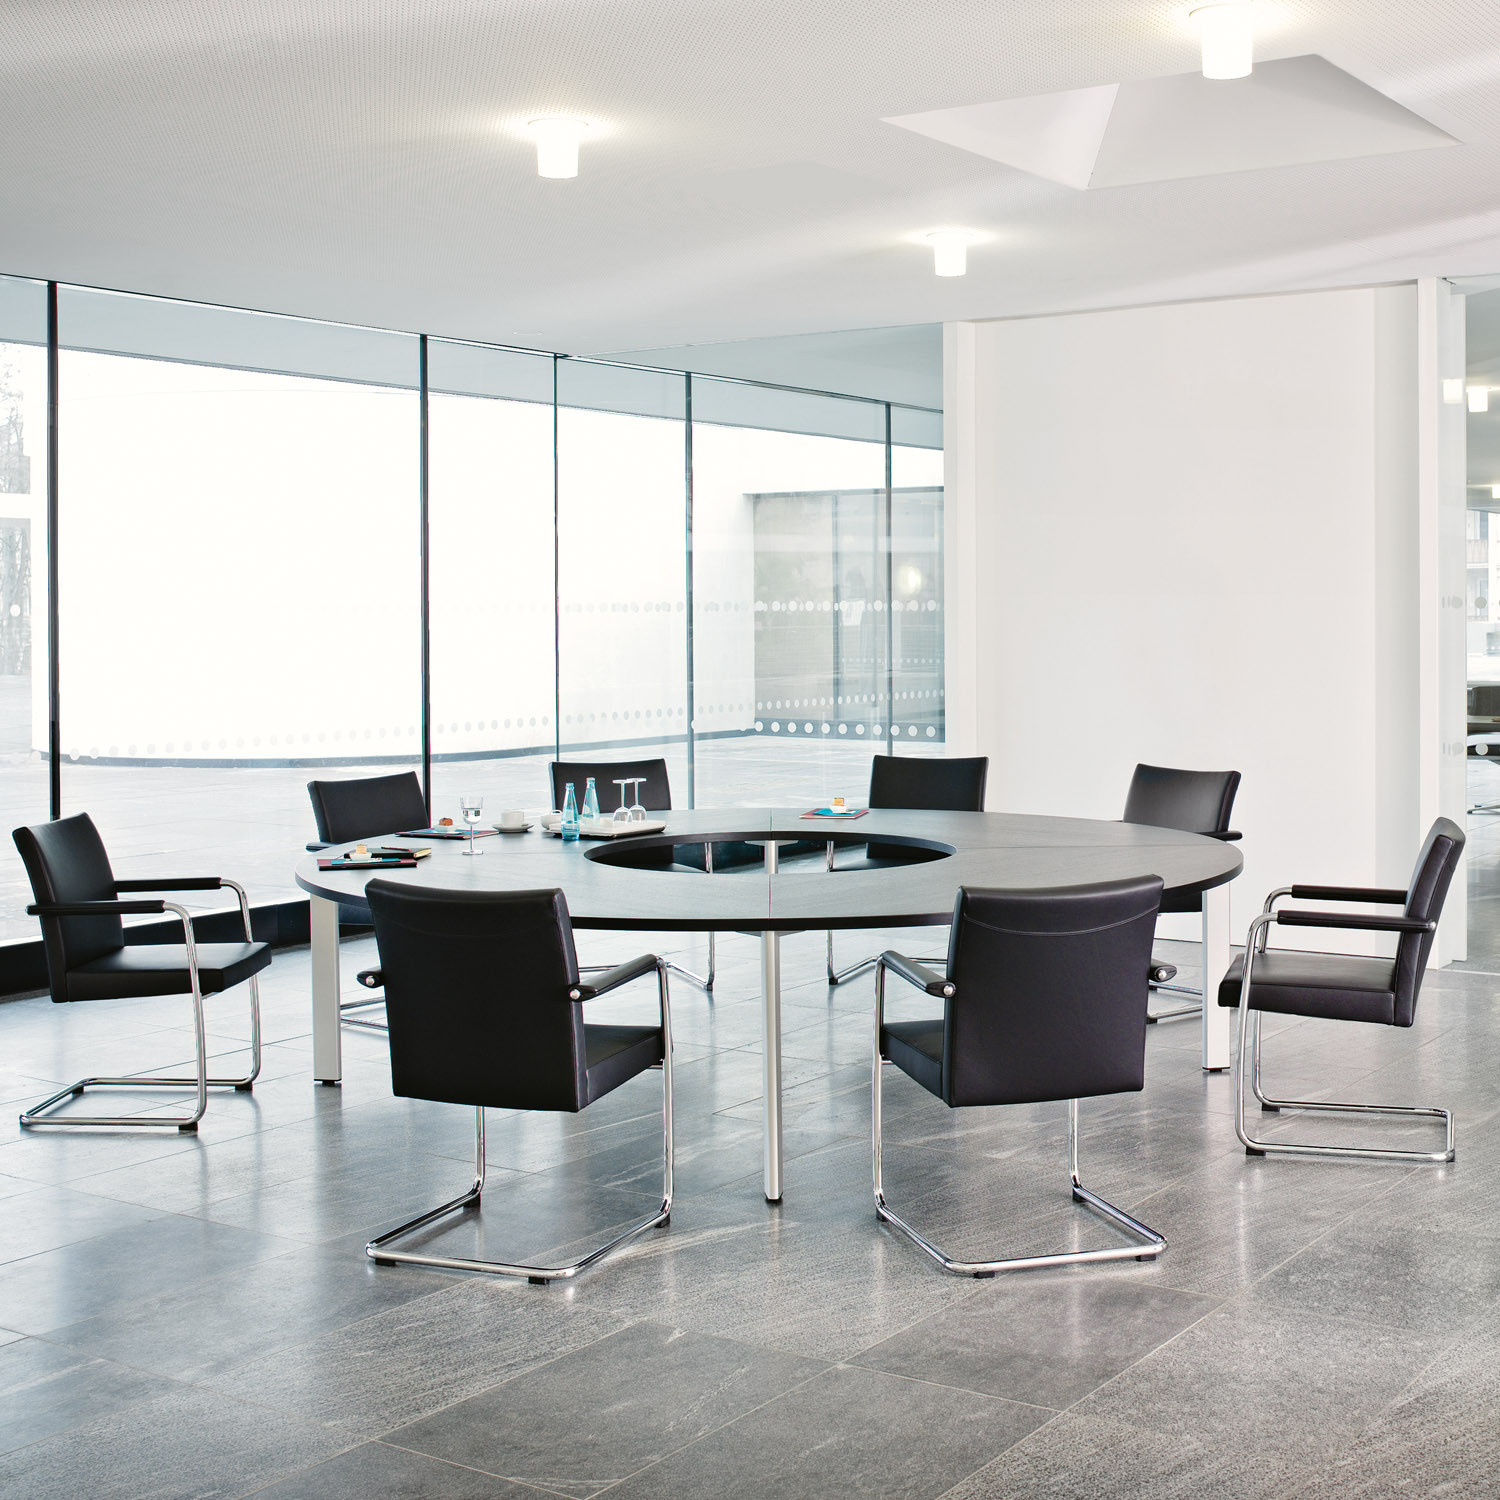 Brunner Spira.Sit Cantilever Meeting Chairs